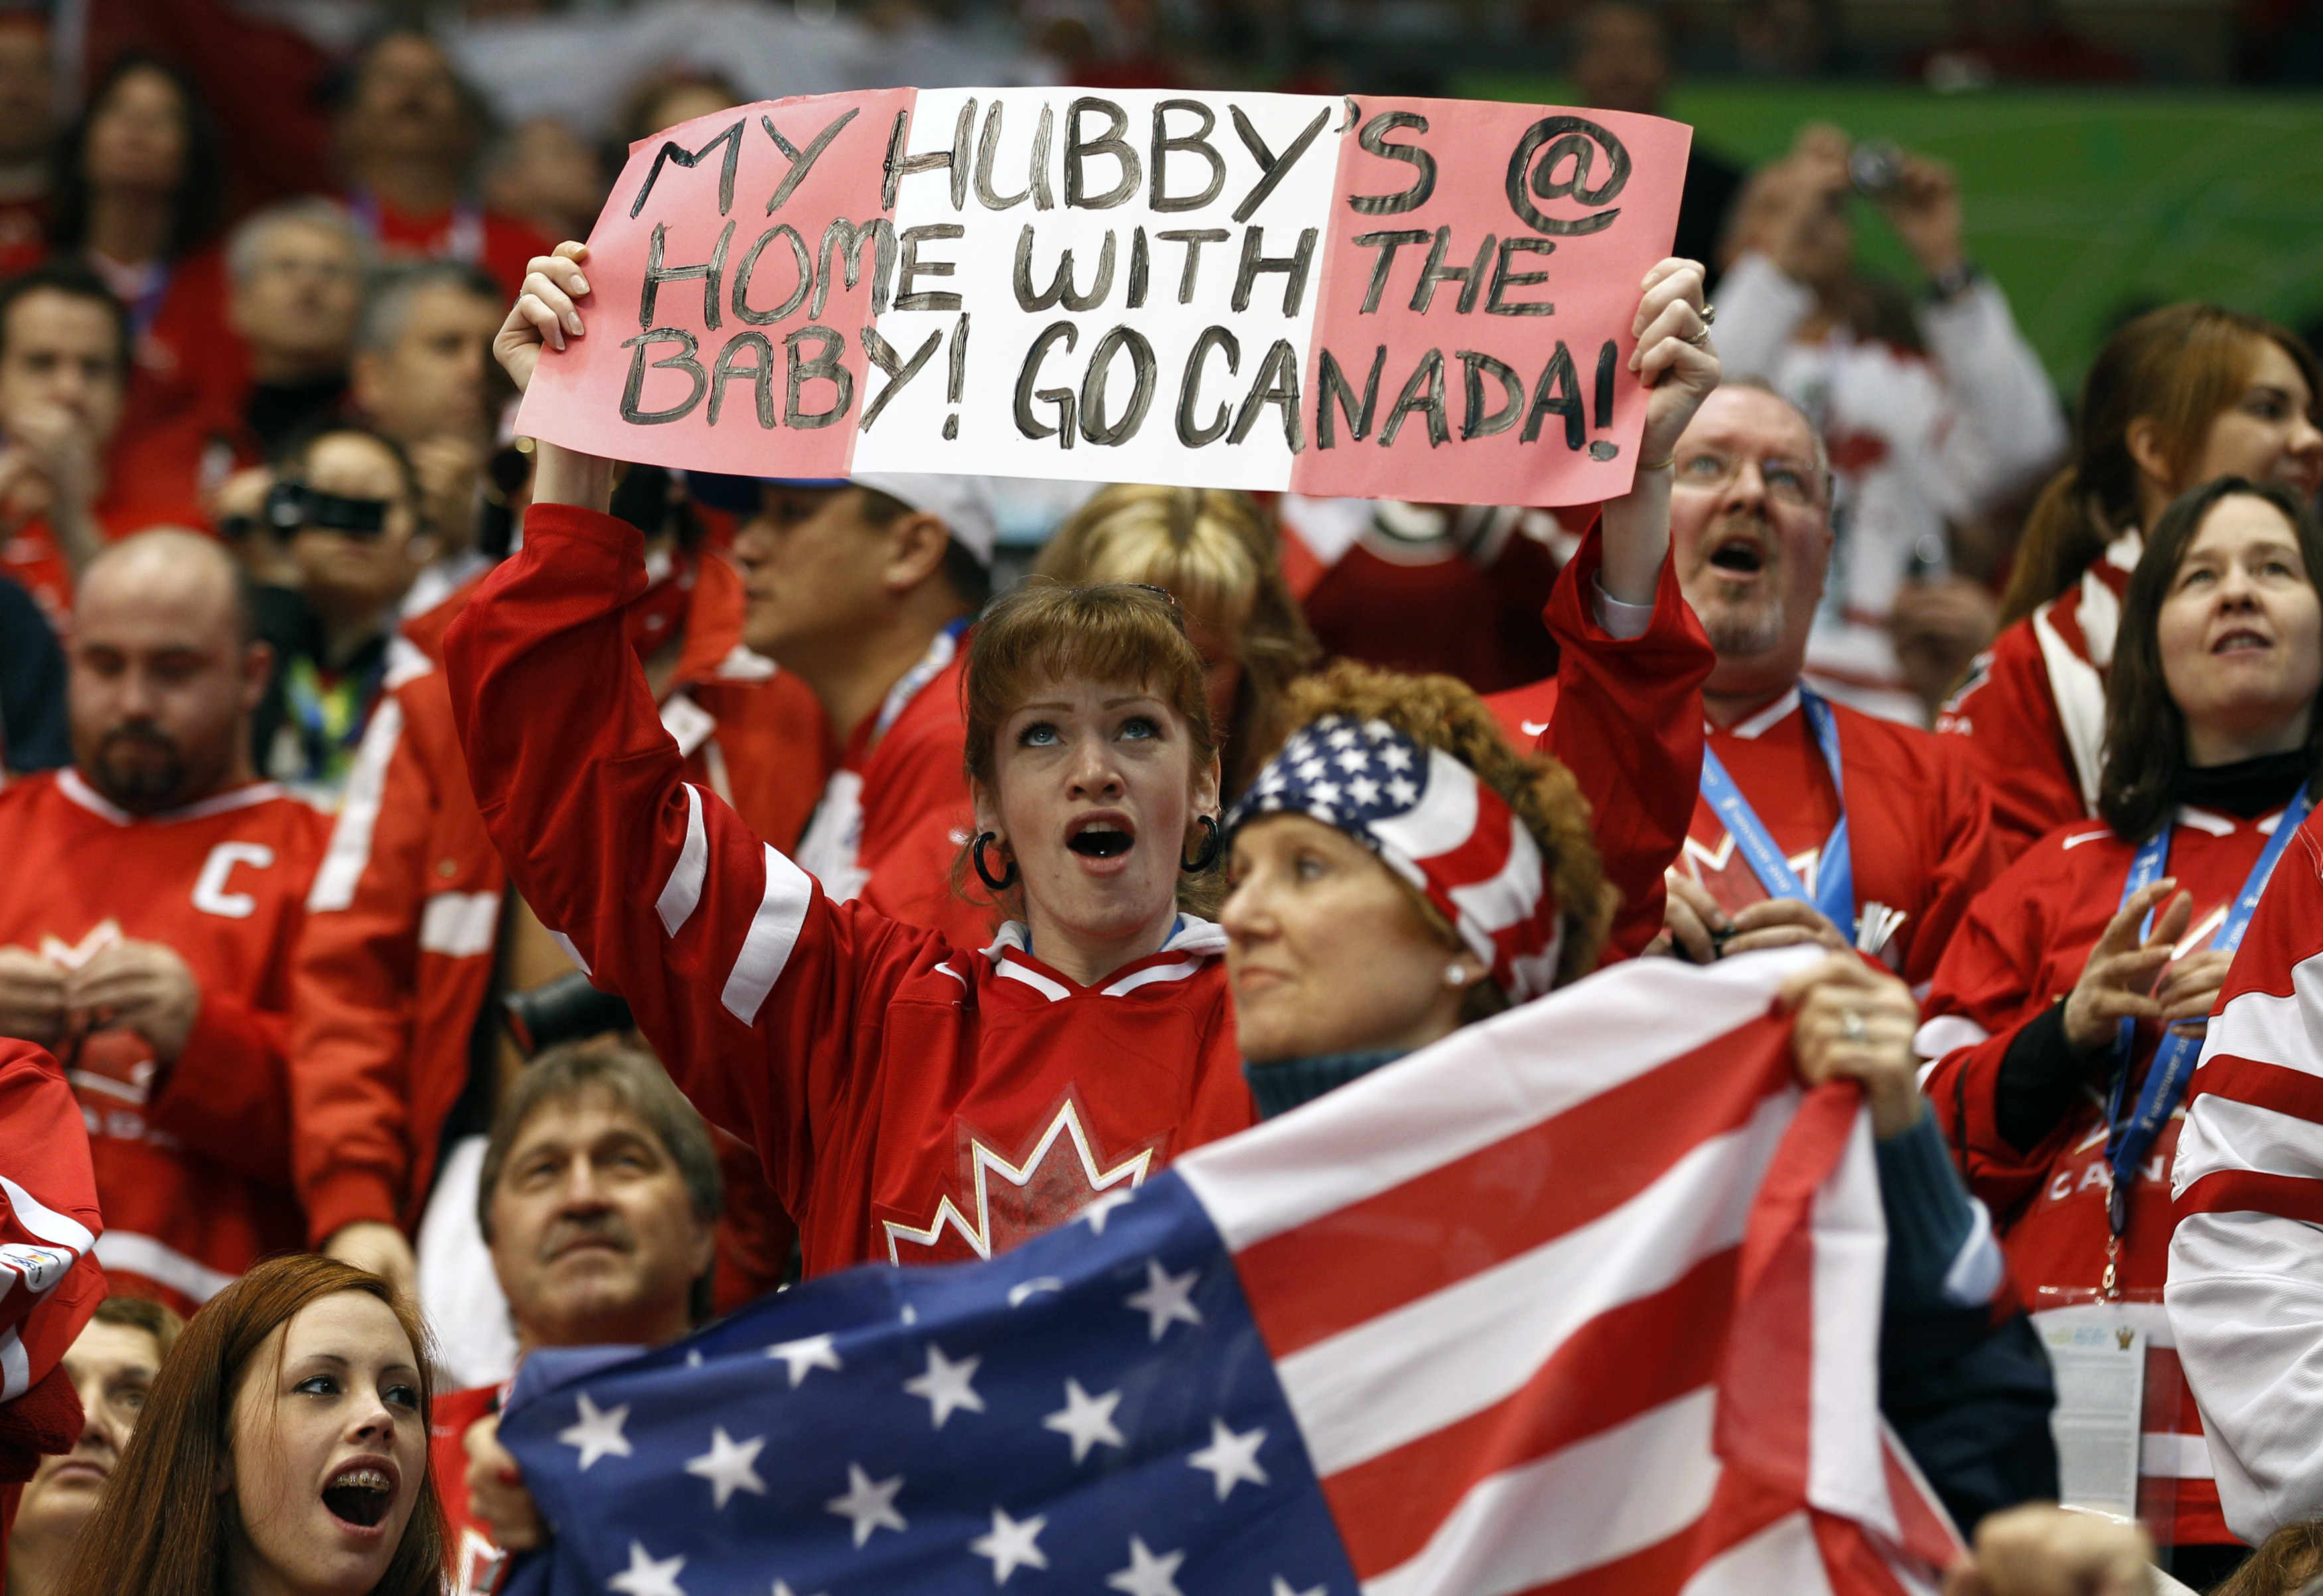 The 2010 Olympics men's hockey final was the most-watched hockey game in 30 years. (Hans Deryk/Reuters)